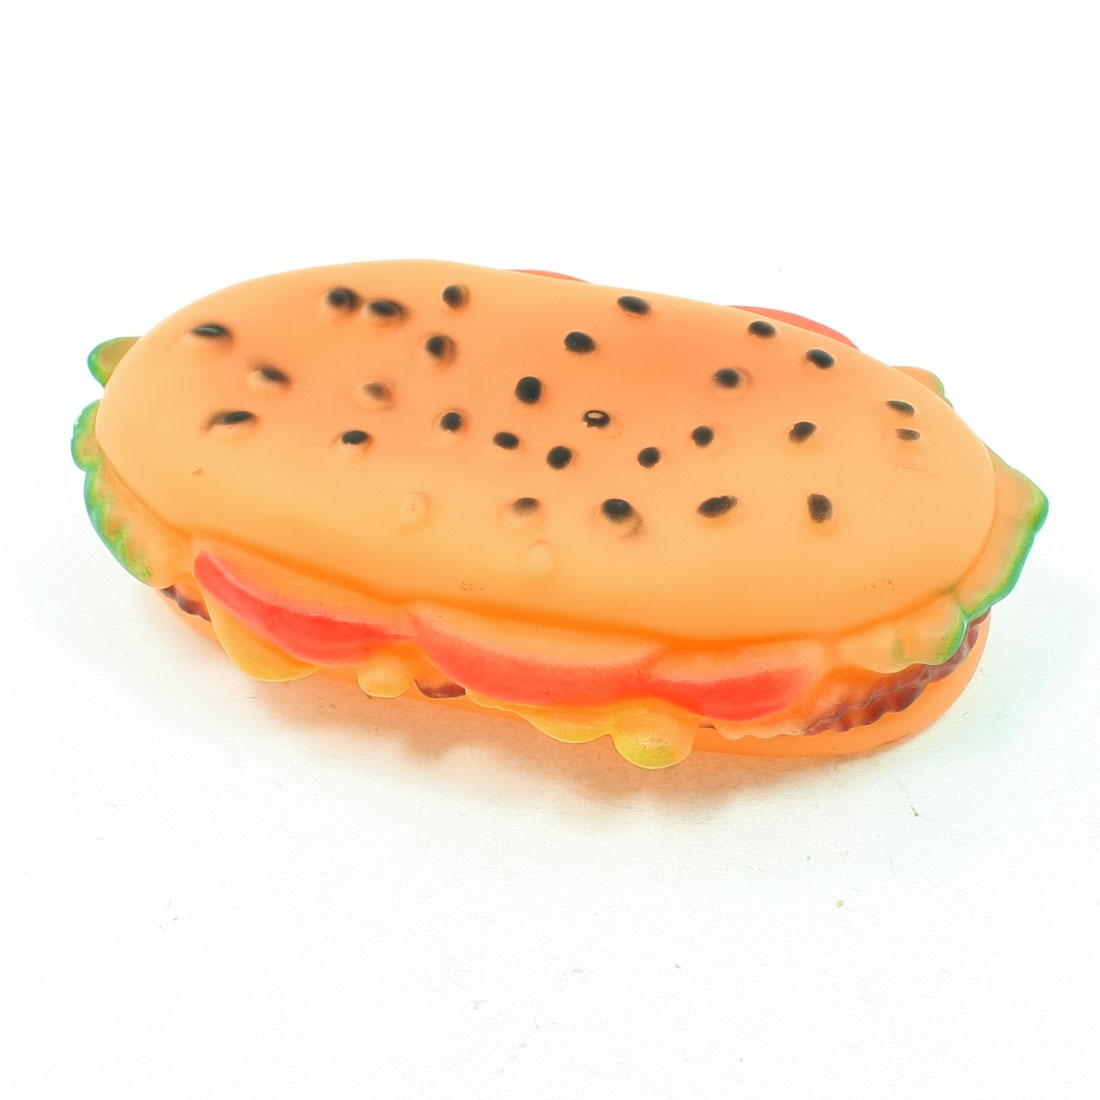 Salmon Pink Vinyl Rubber Hamburger Shape Squeaky Toy for Pet Dog